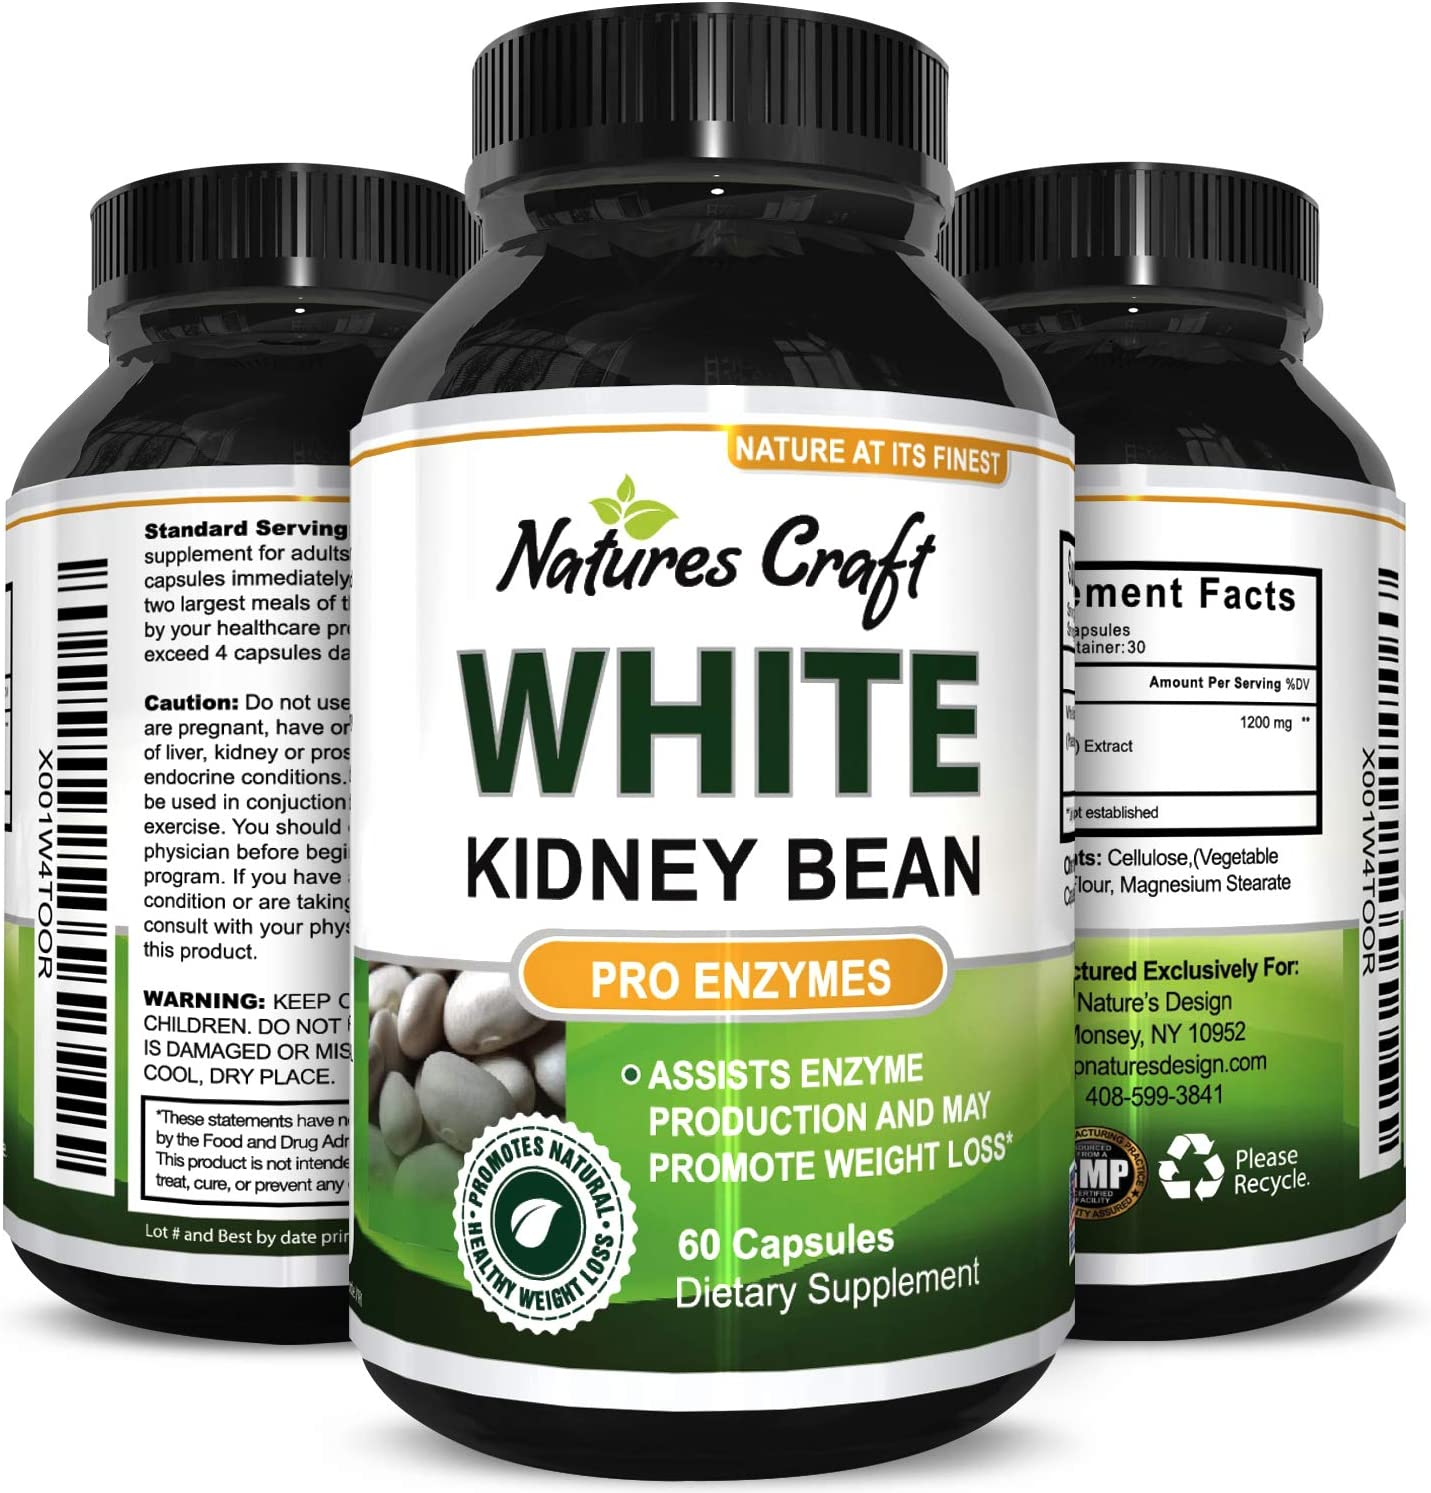 Pure White Kidney Bean Extract Carb Blocker Natural Supplement for Appetite Control Health Weight Loss Energy Pills for Women Men Digestive Support Capsules for Fat Loss